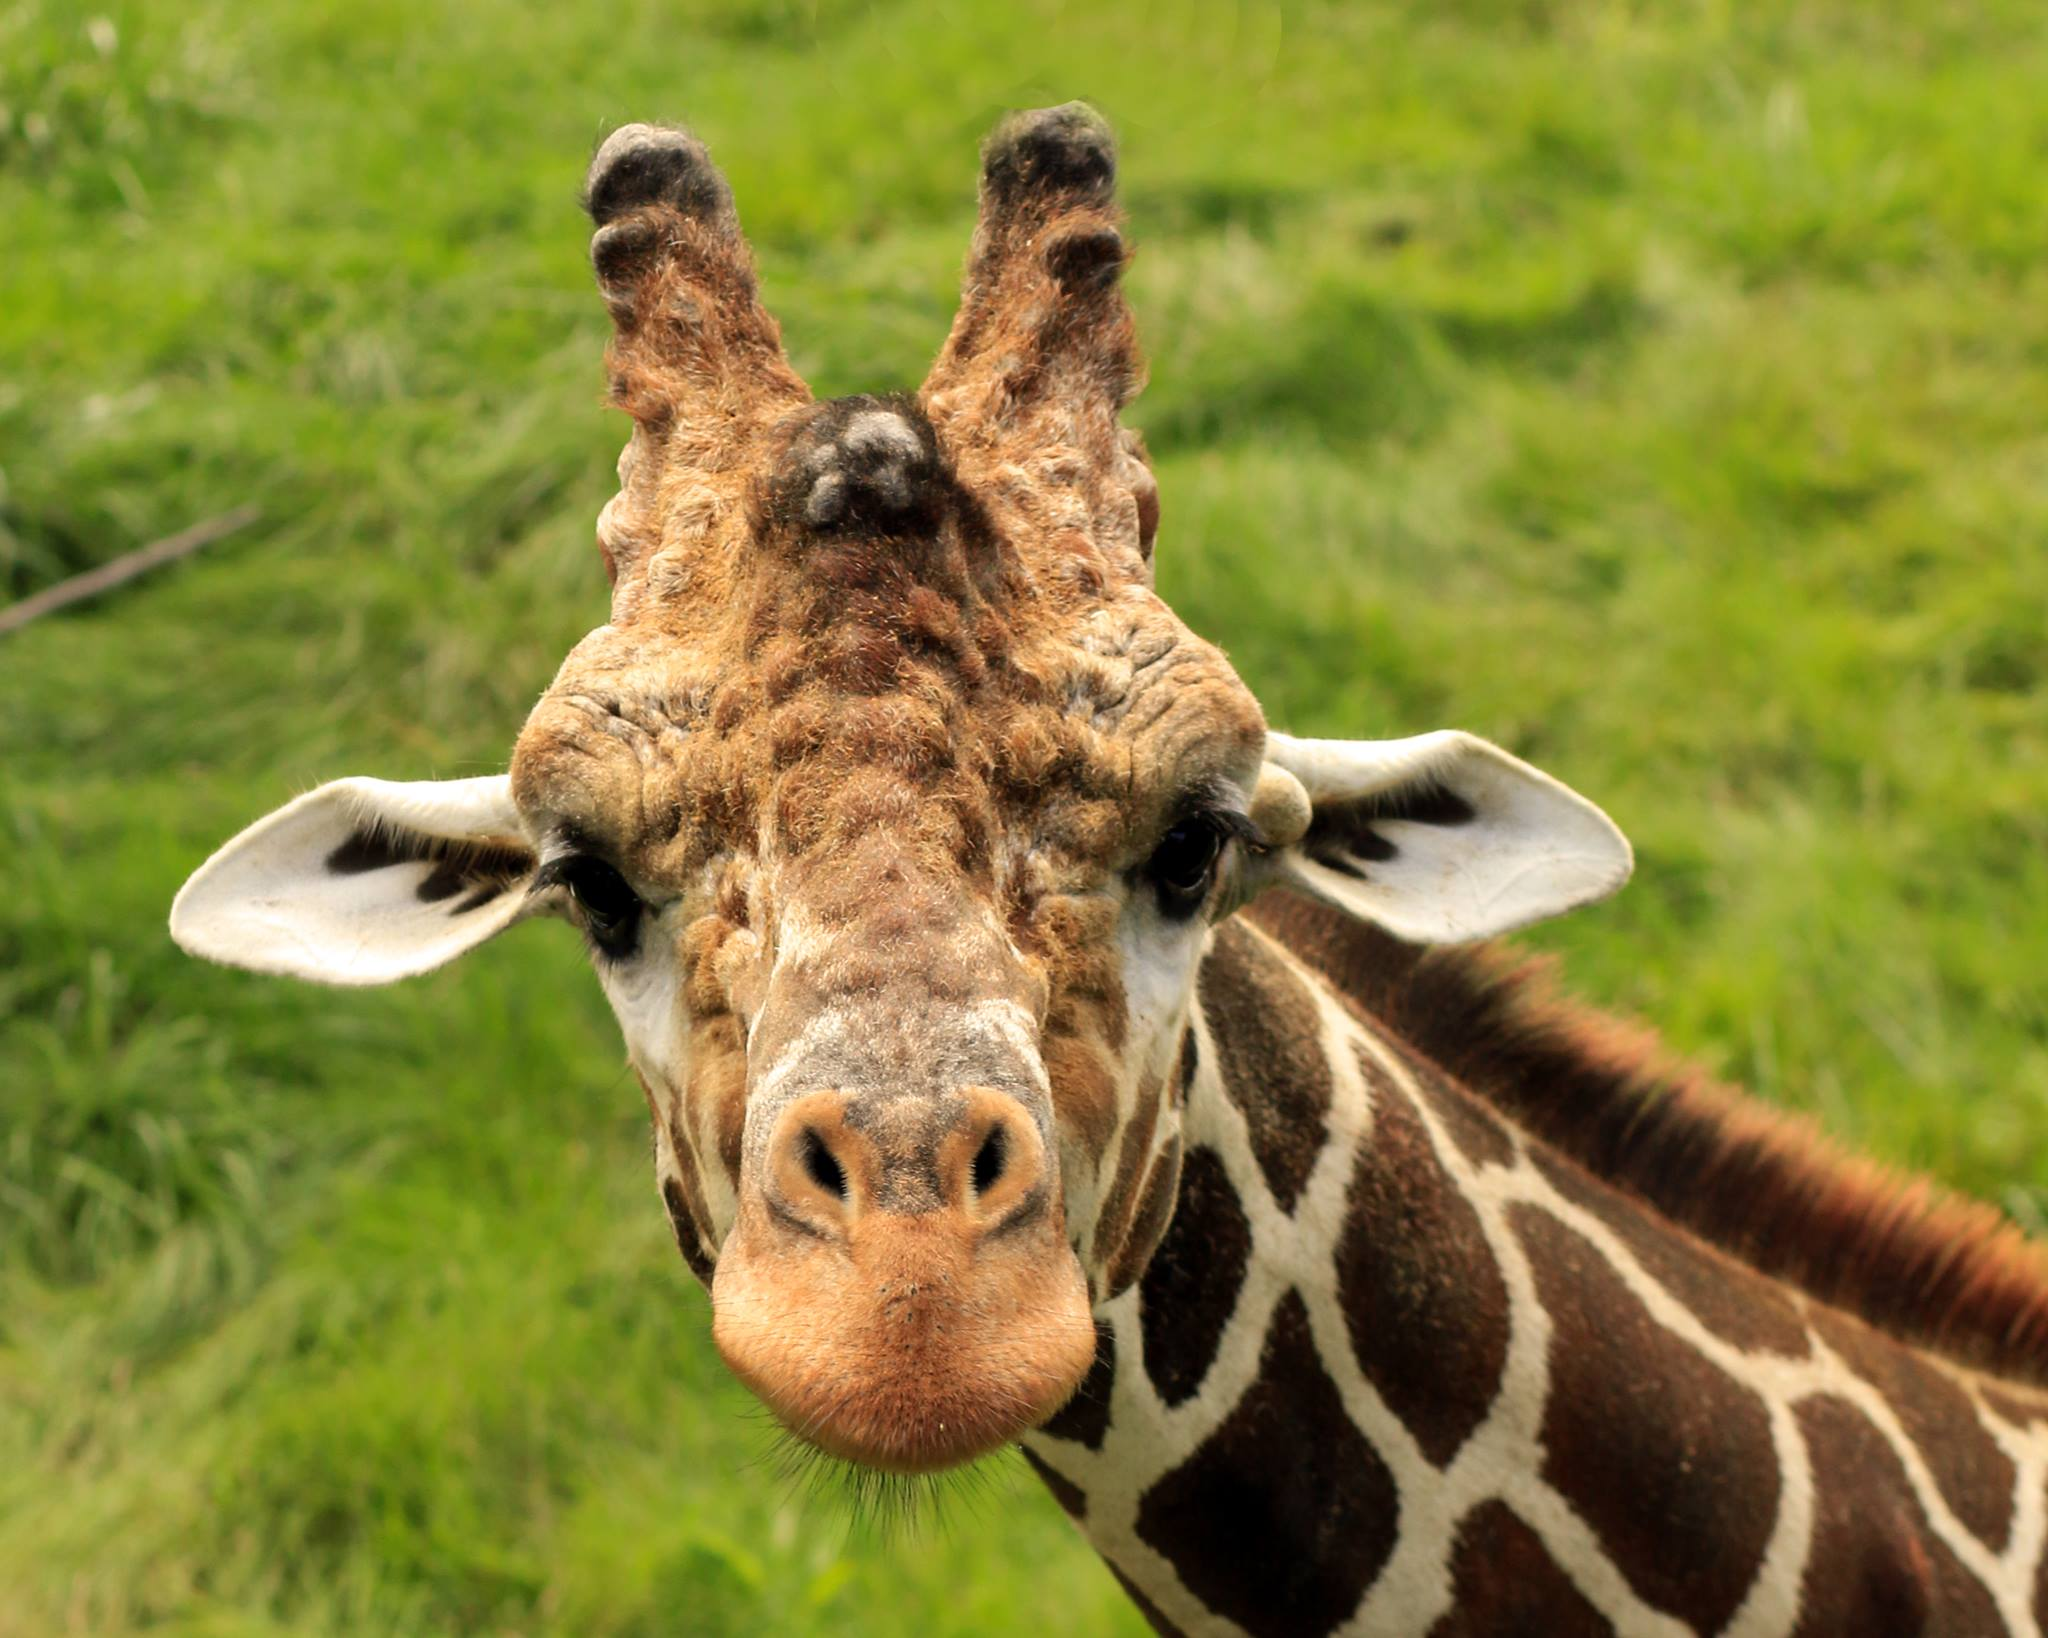 Click here to watch a video about the Giraffes at Peoria Zoo!